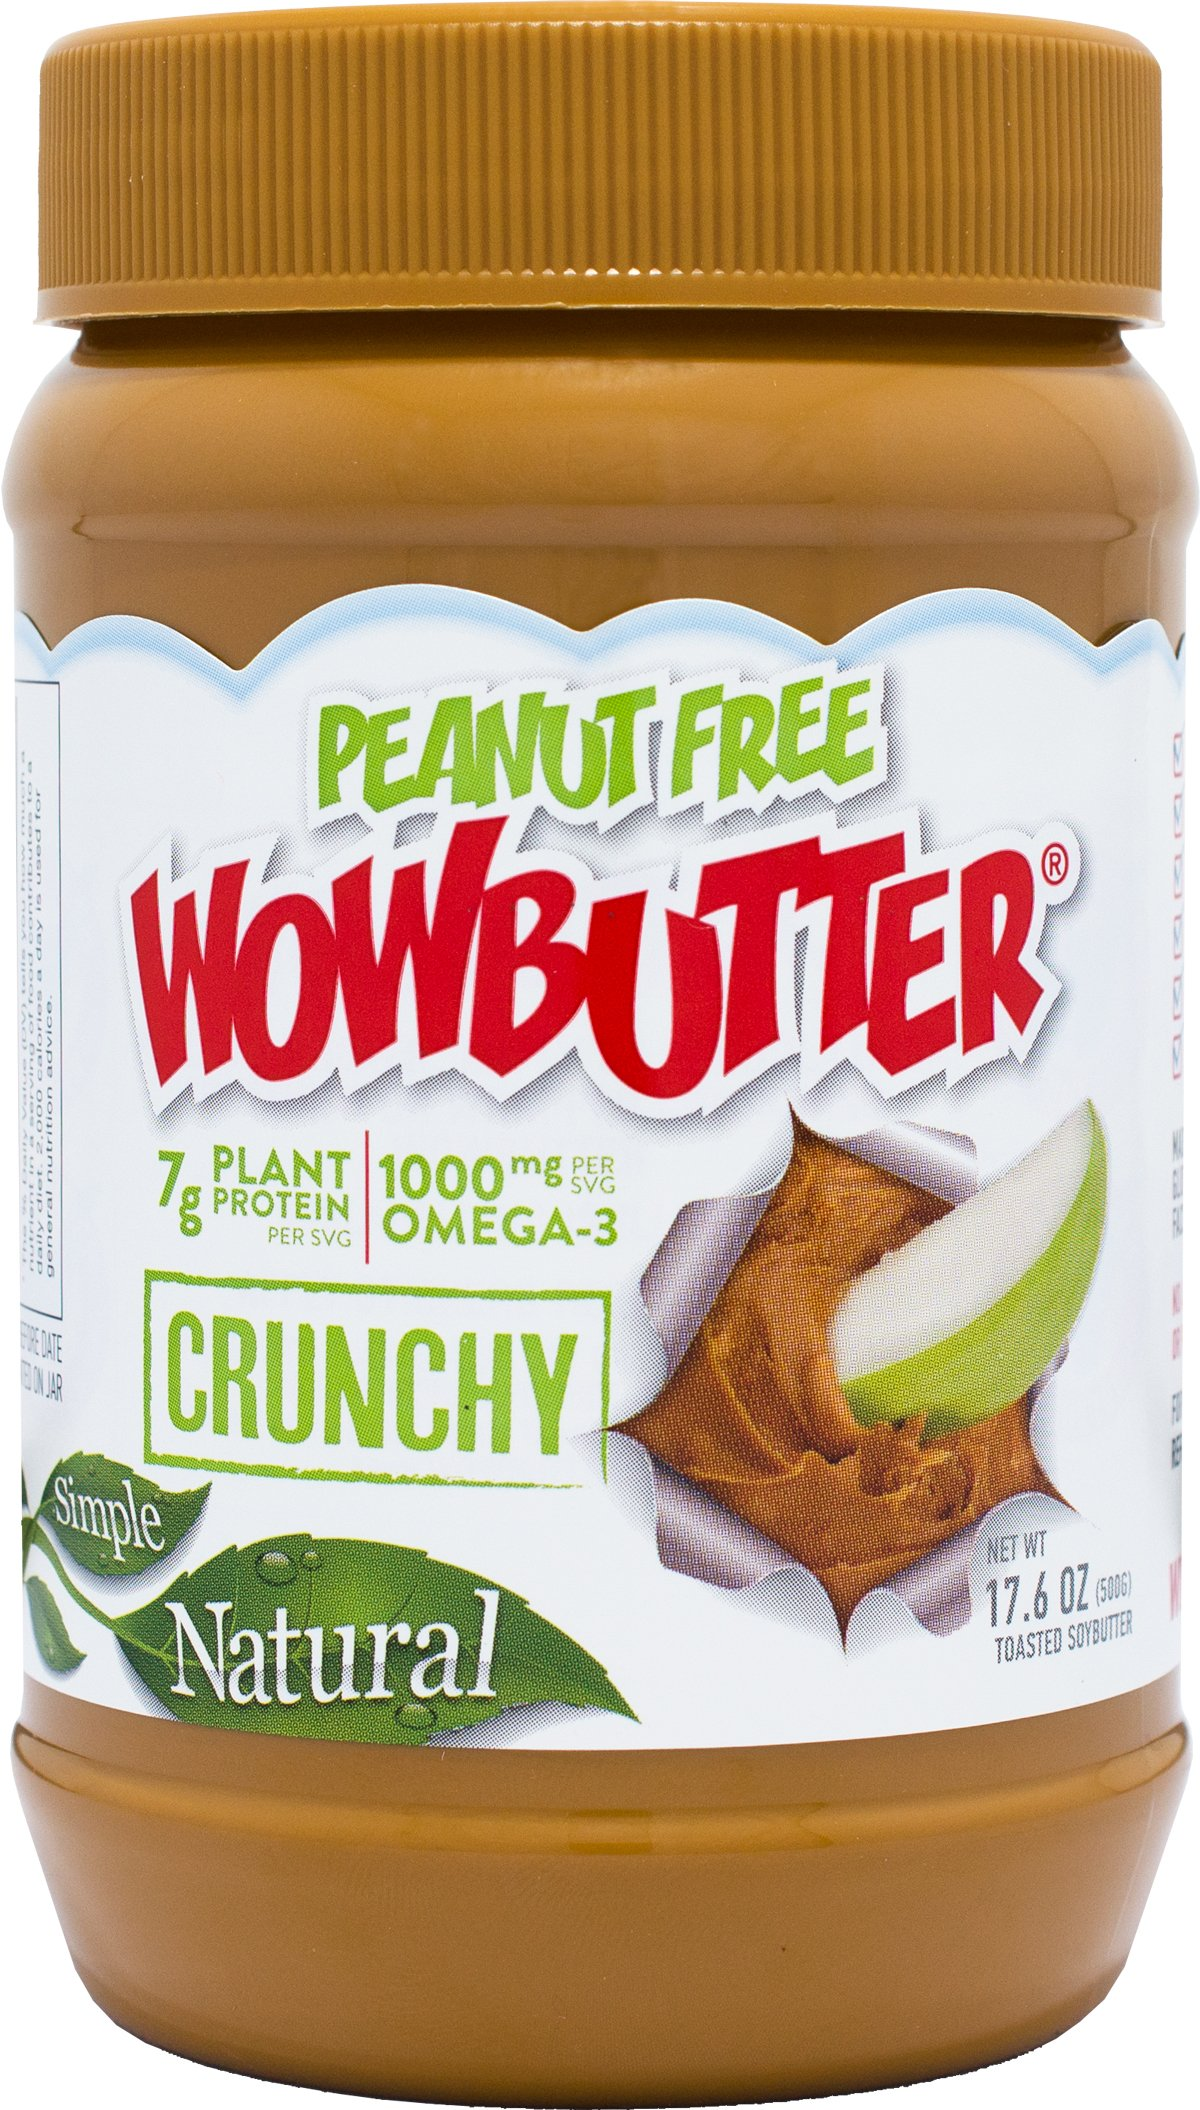 WOWBUTTER Natural Peanut Free Crunchy 6x1.1lb Jars